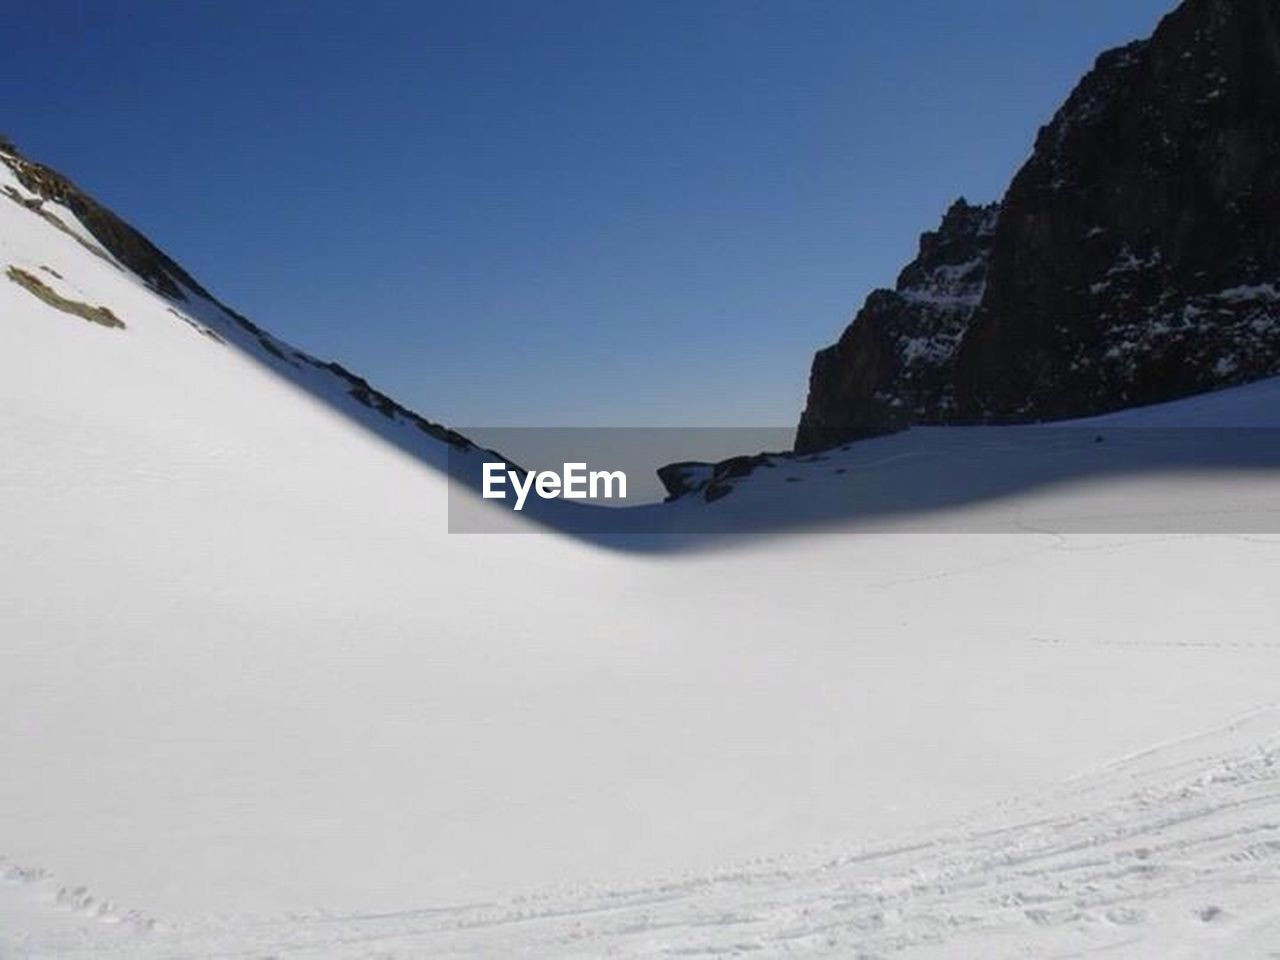 snow, winter, cold temperature, nature, outdoors, day, clear sky, scenics, beauty in nature, no people, mountain, sky